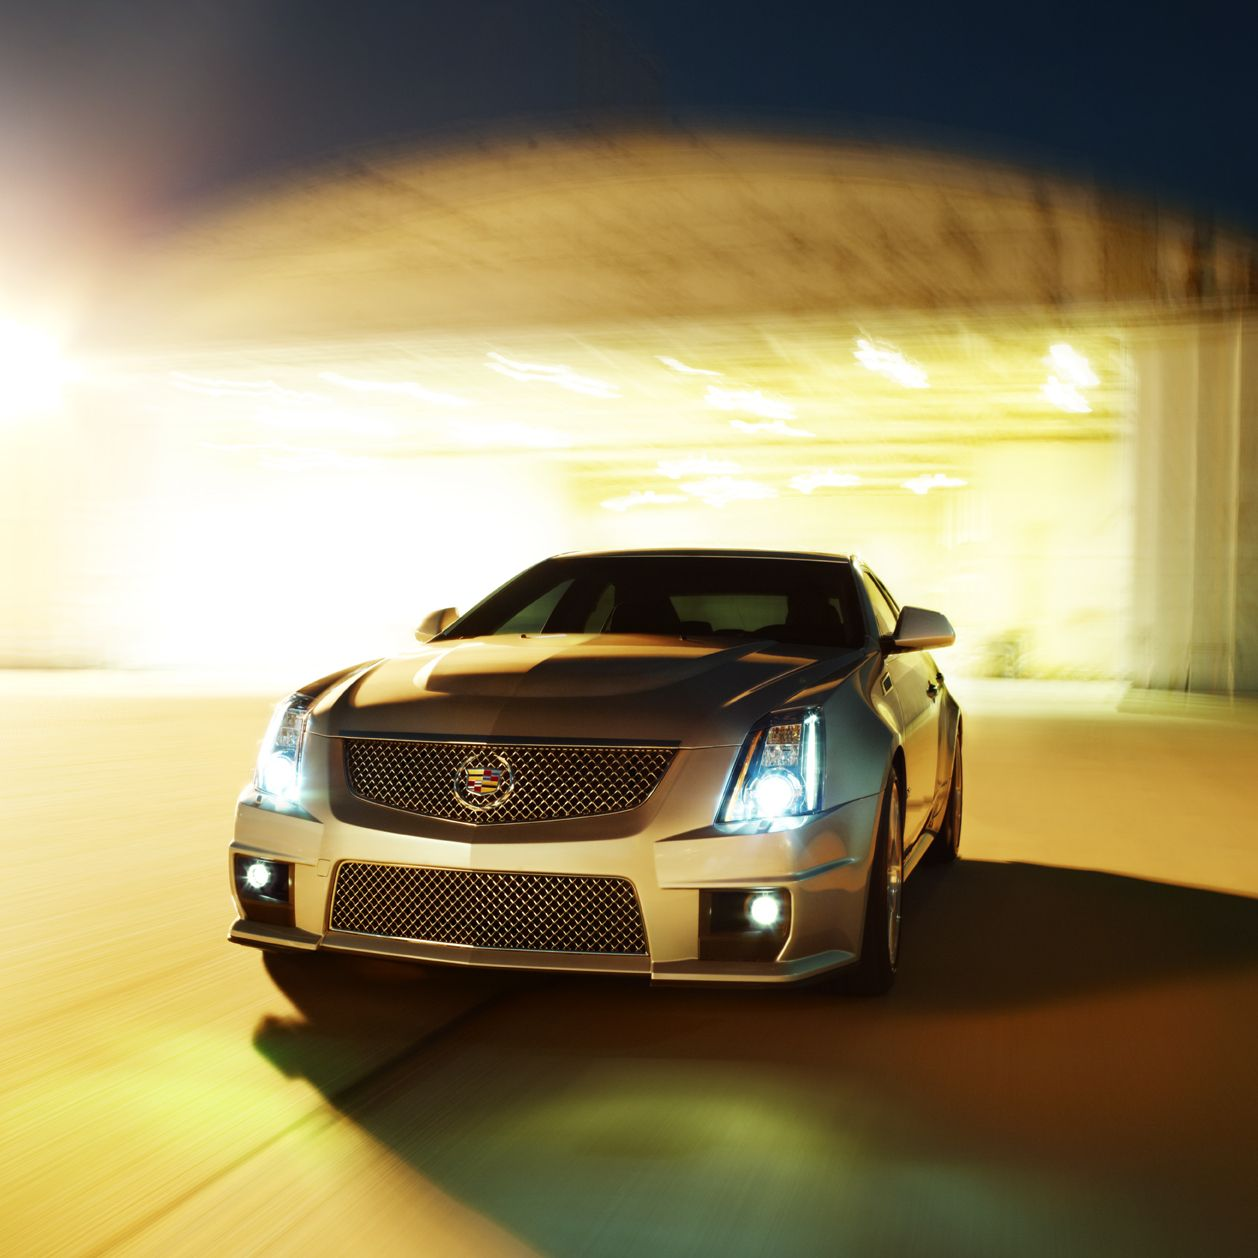 Cadillac Car Rental: The #Cadillac #CTS-V Sedan #Performance